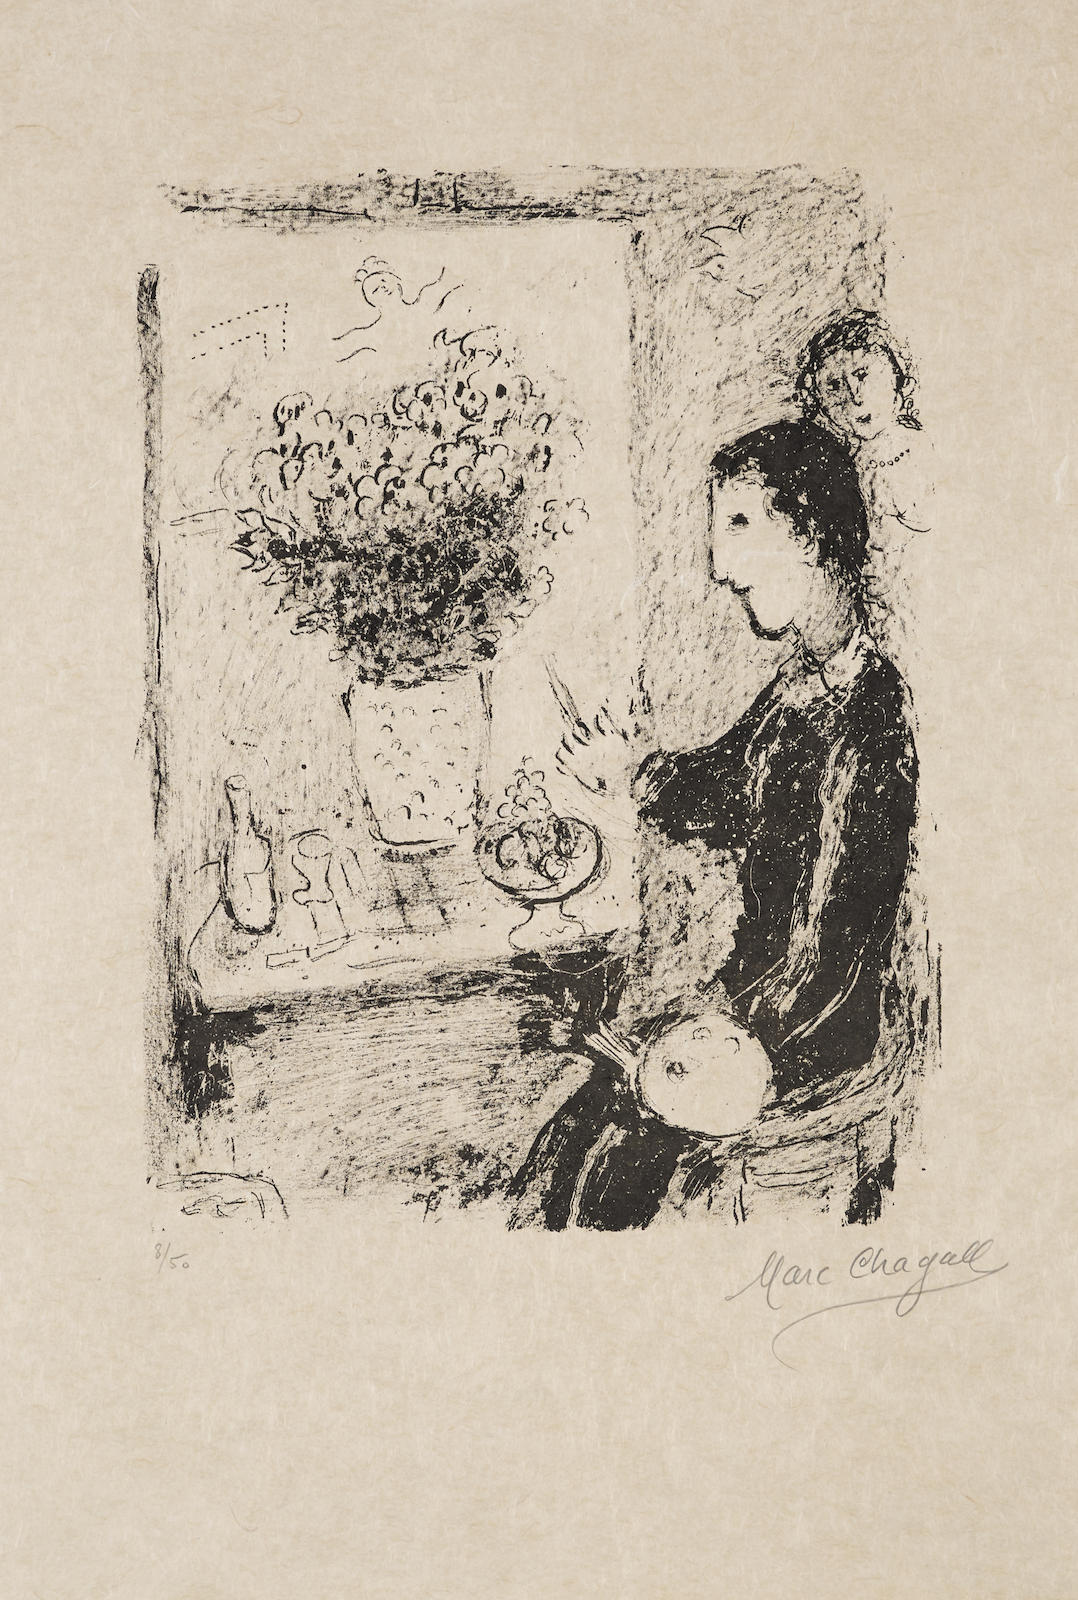 Marc Chagall-The Painter-1979